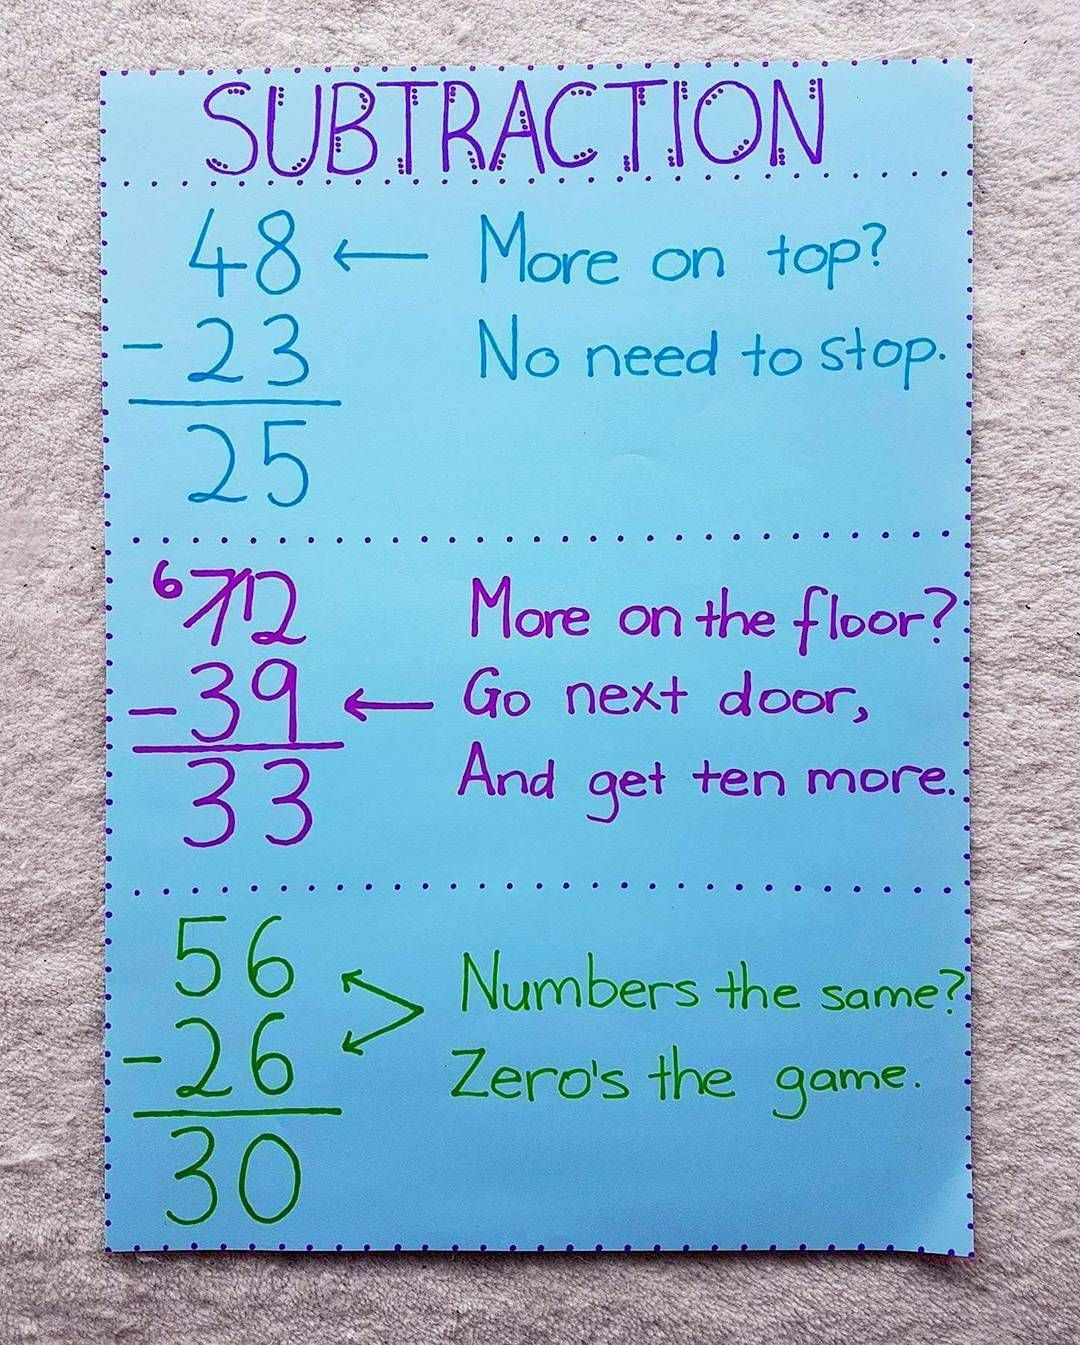 New subtraction anchor chart. | Math and Content Areas | Pinterest ...